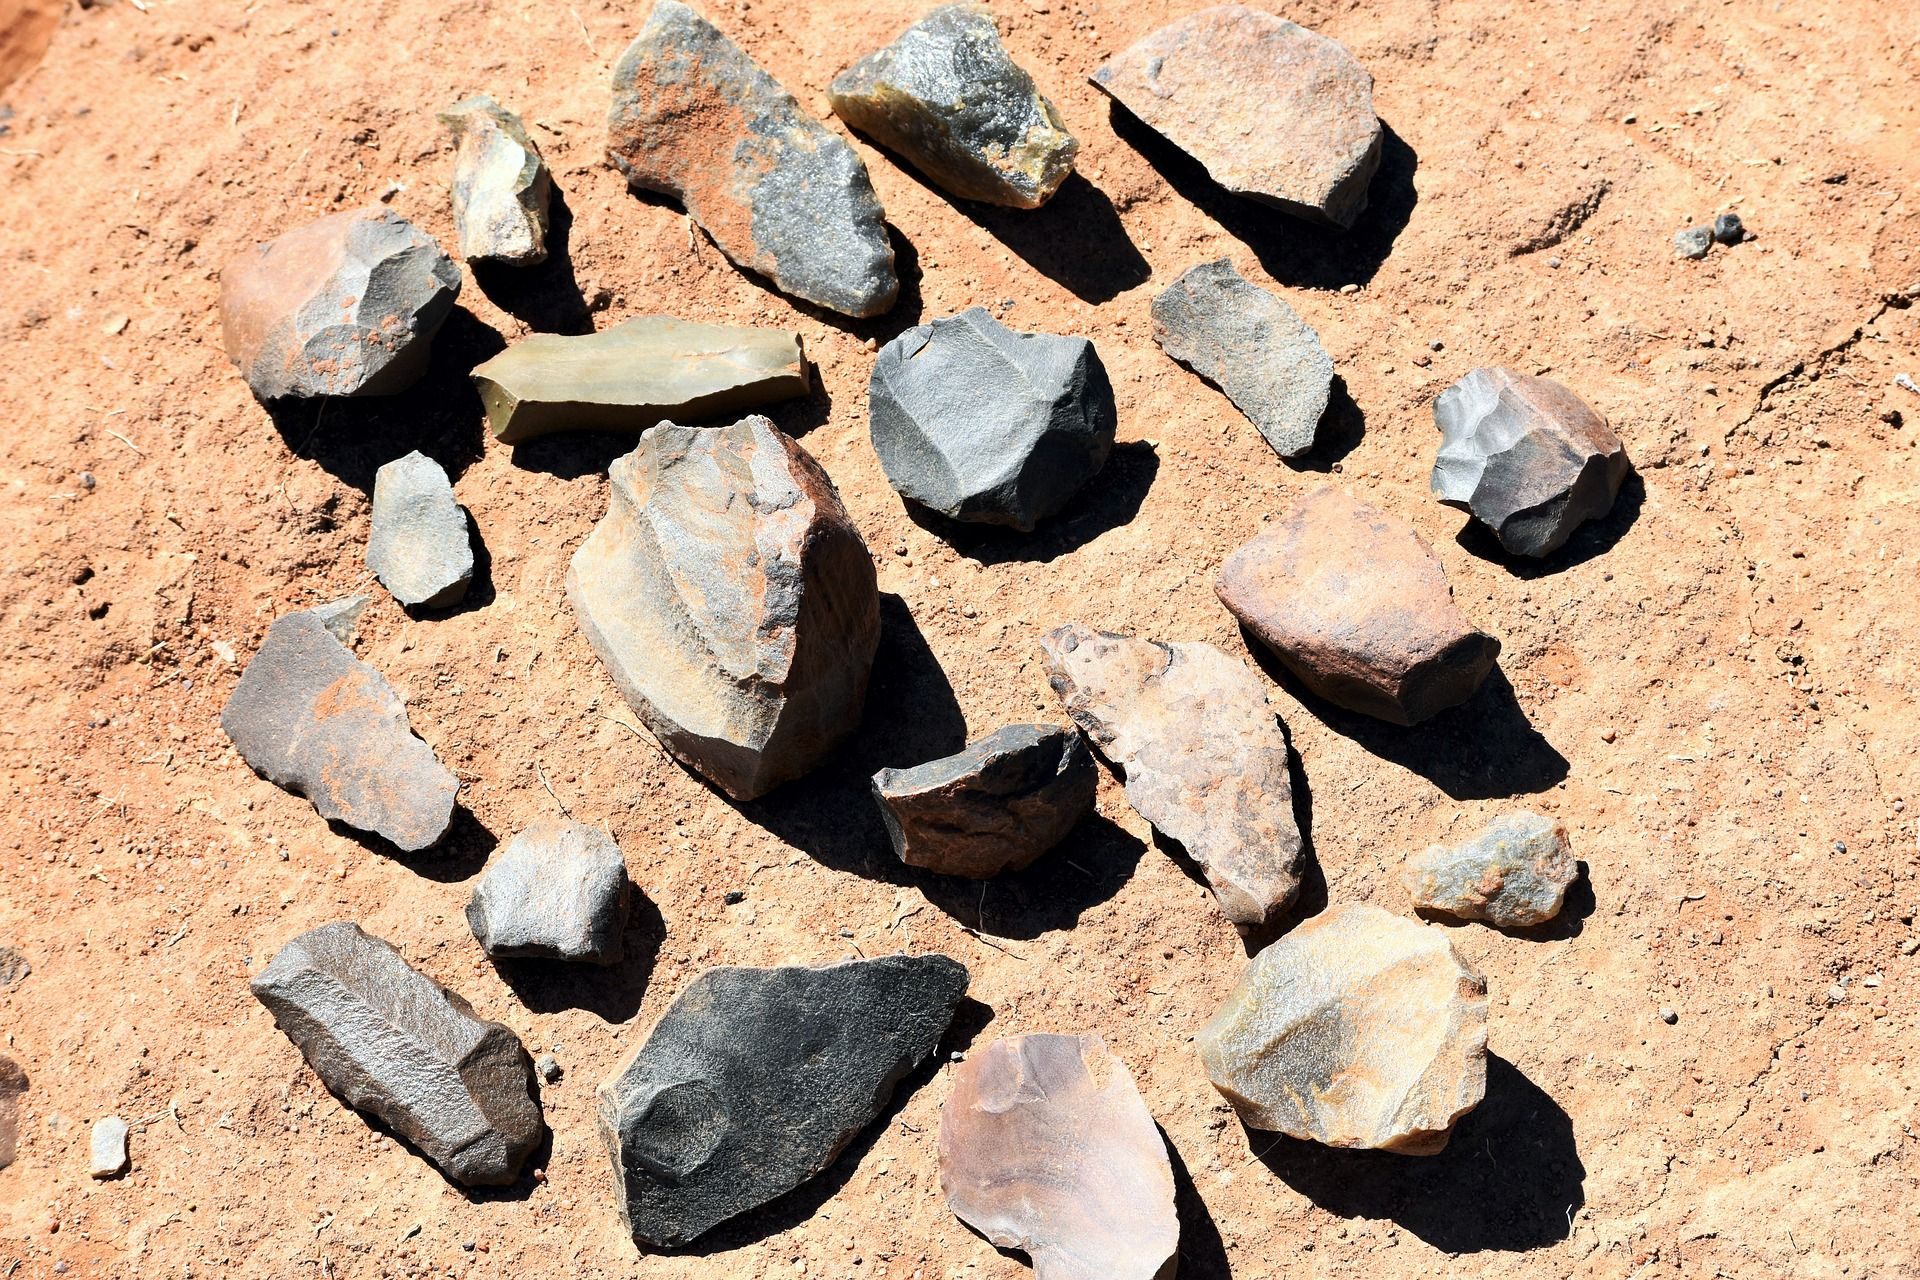 stone tools, early world history